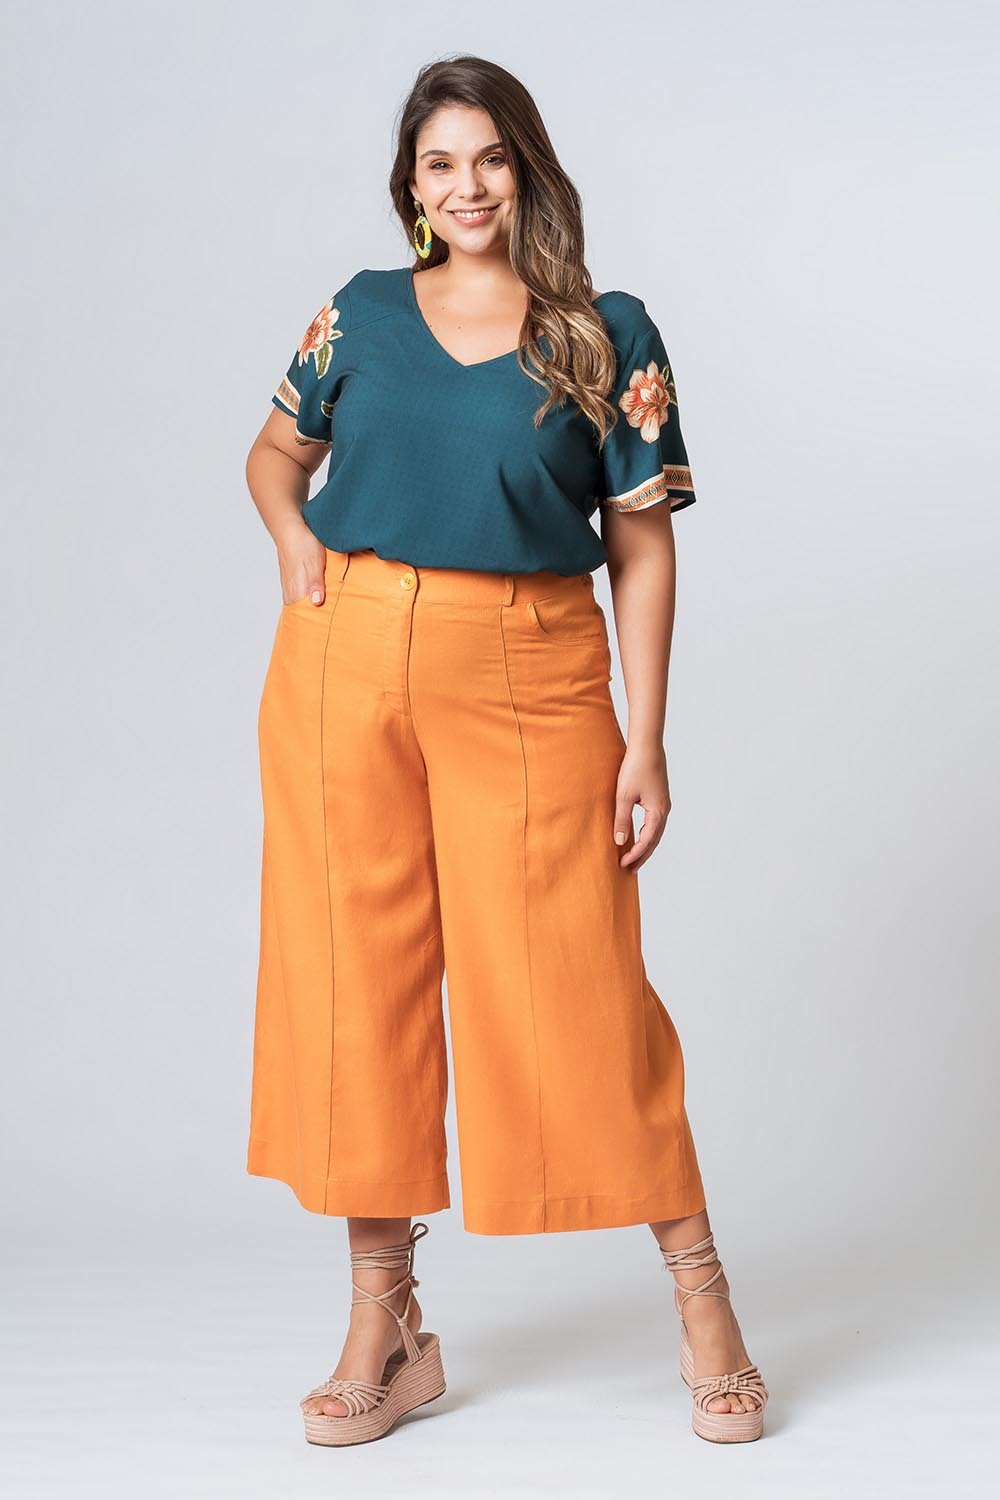 calca_plus_size_cropped_nervura_amarelo_19623_1_20200915112241